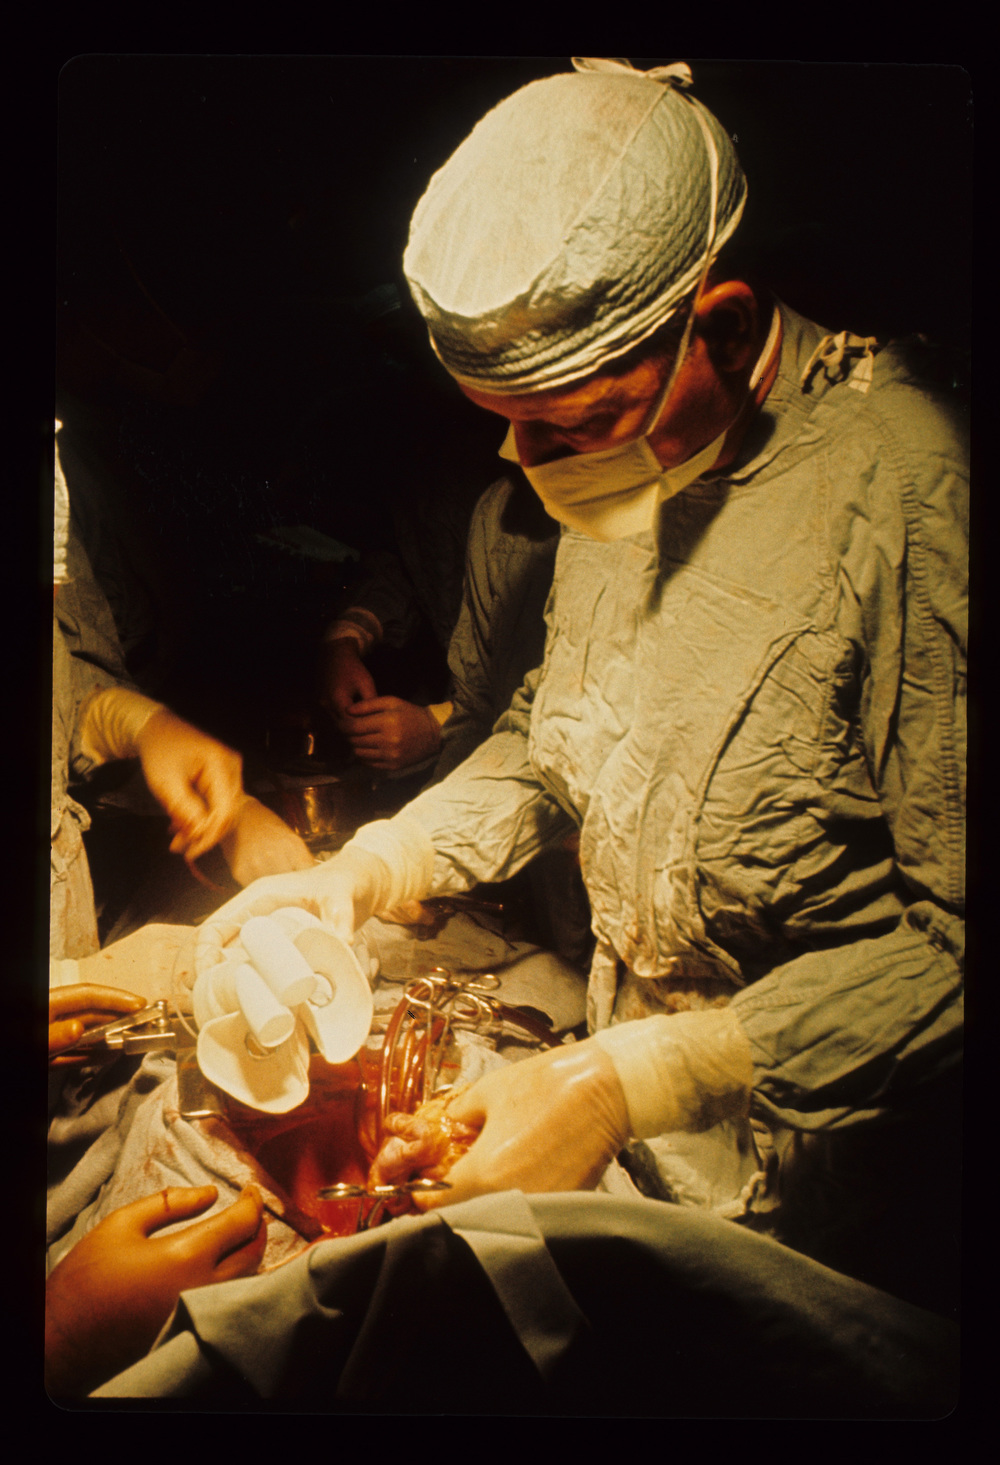 Dr. Cooley implanting the first total artificial heart in a human on April 4, 1969. He's holding Haskell Karp's diseased heart in his left hand and the total artificial heart in his right hand.